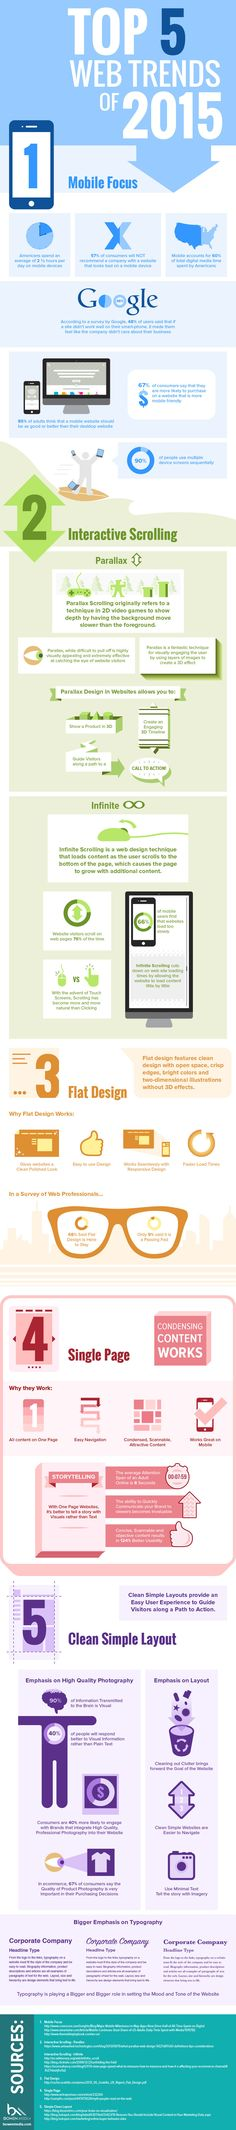 Top #WebDesign Trends to Look for in 2015 - #infographic